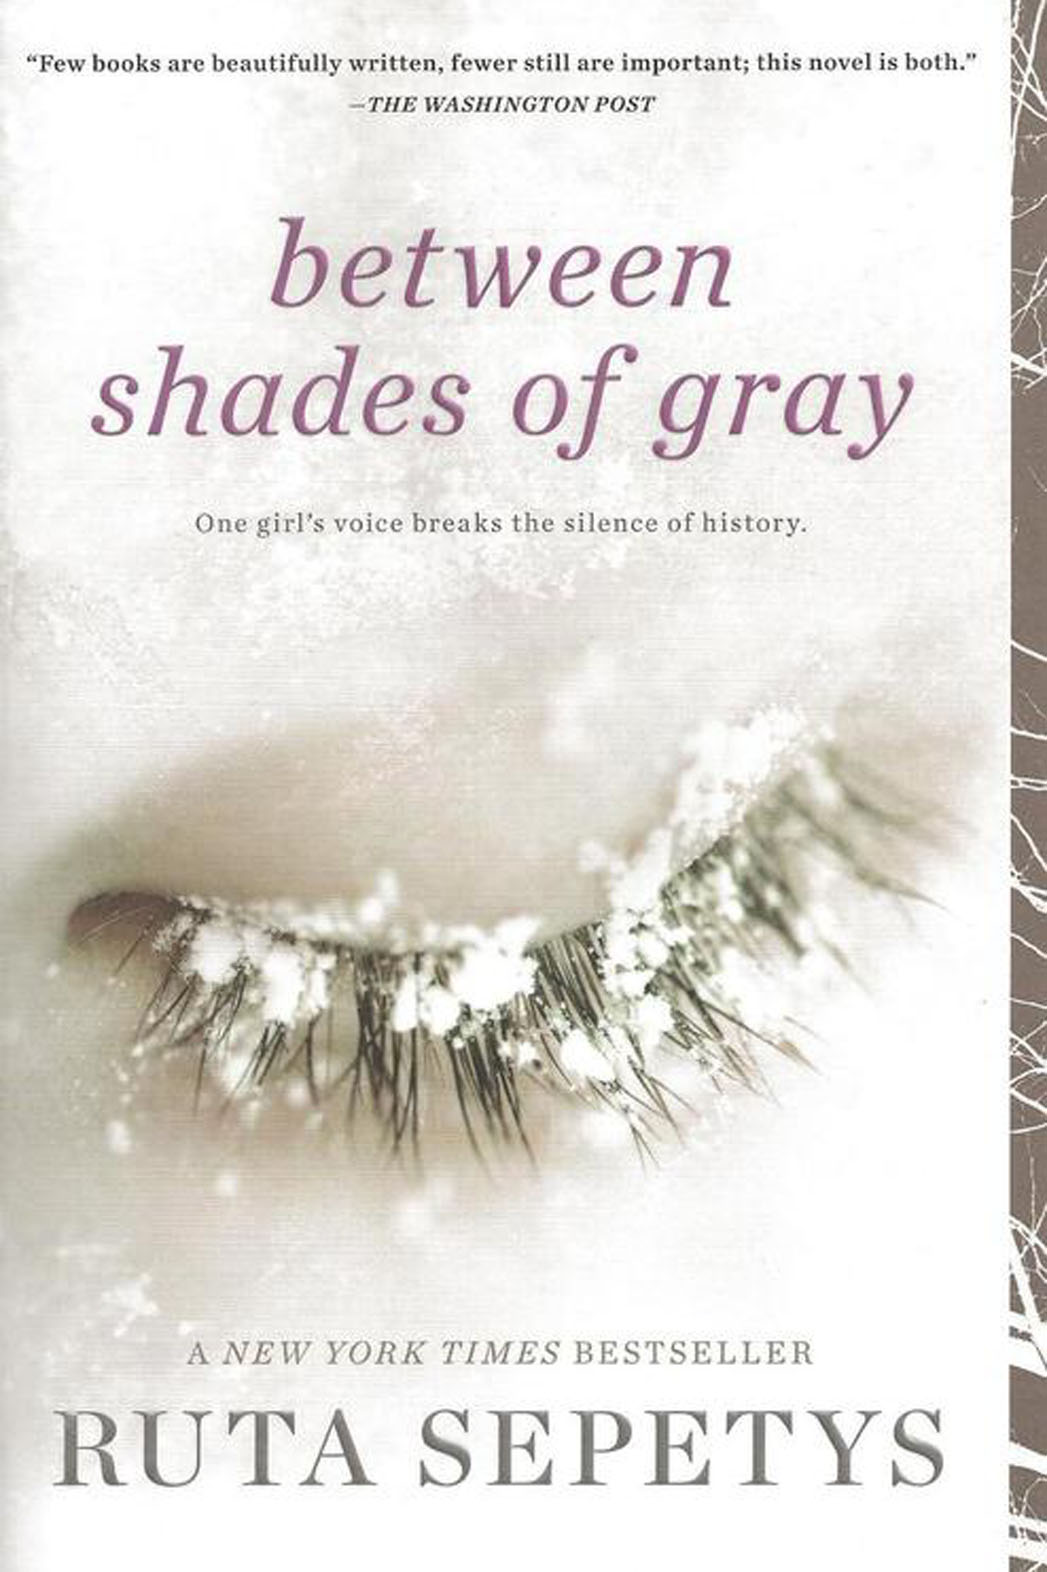 Between Shades of Gray Cover - P 2014